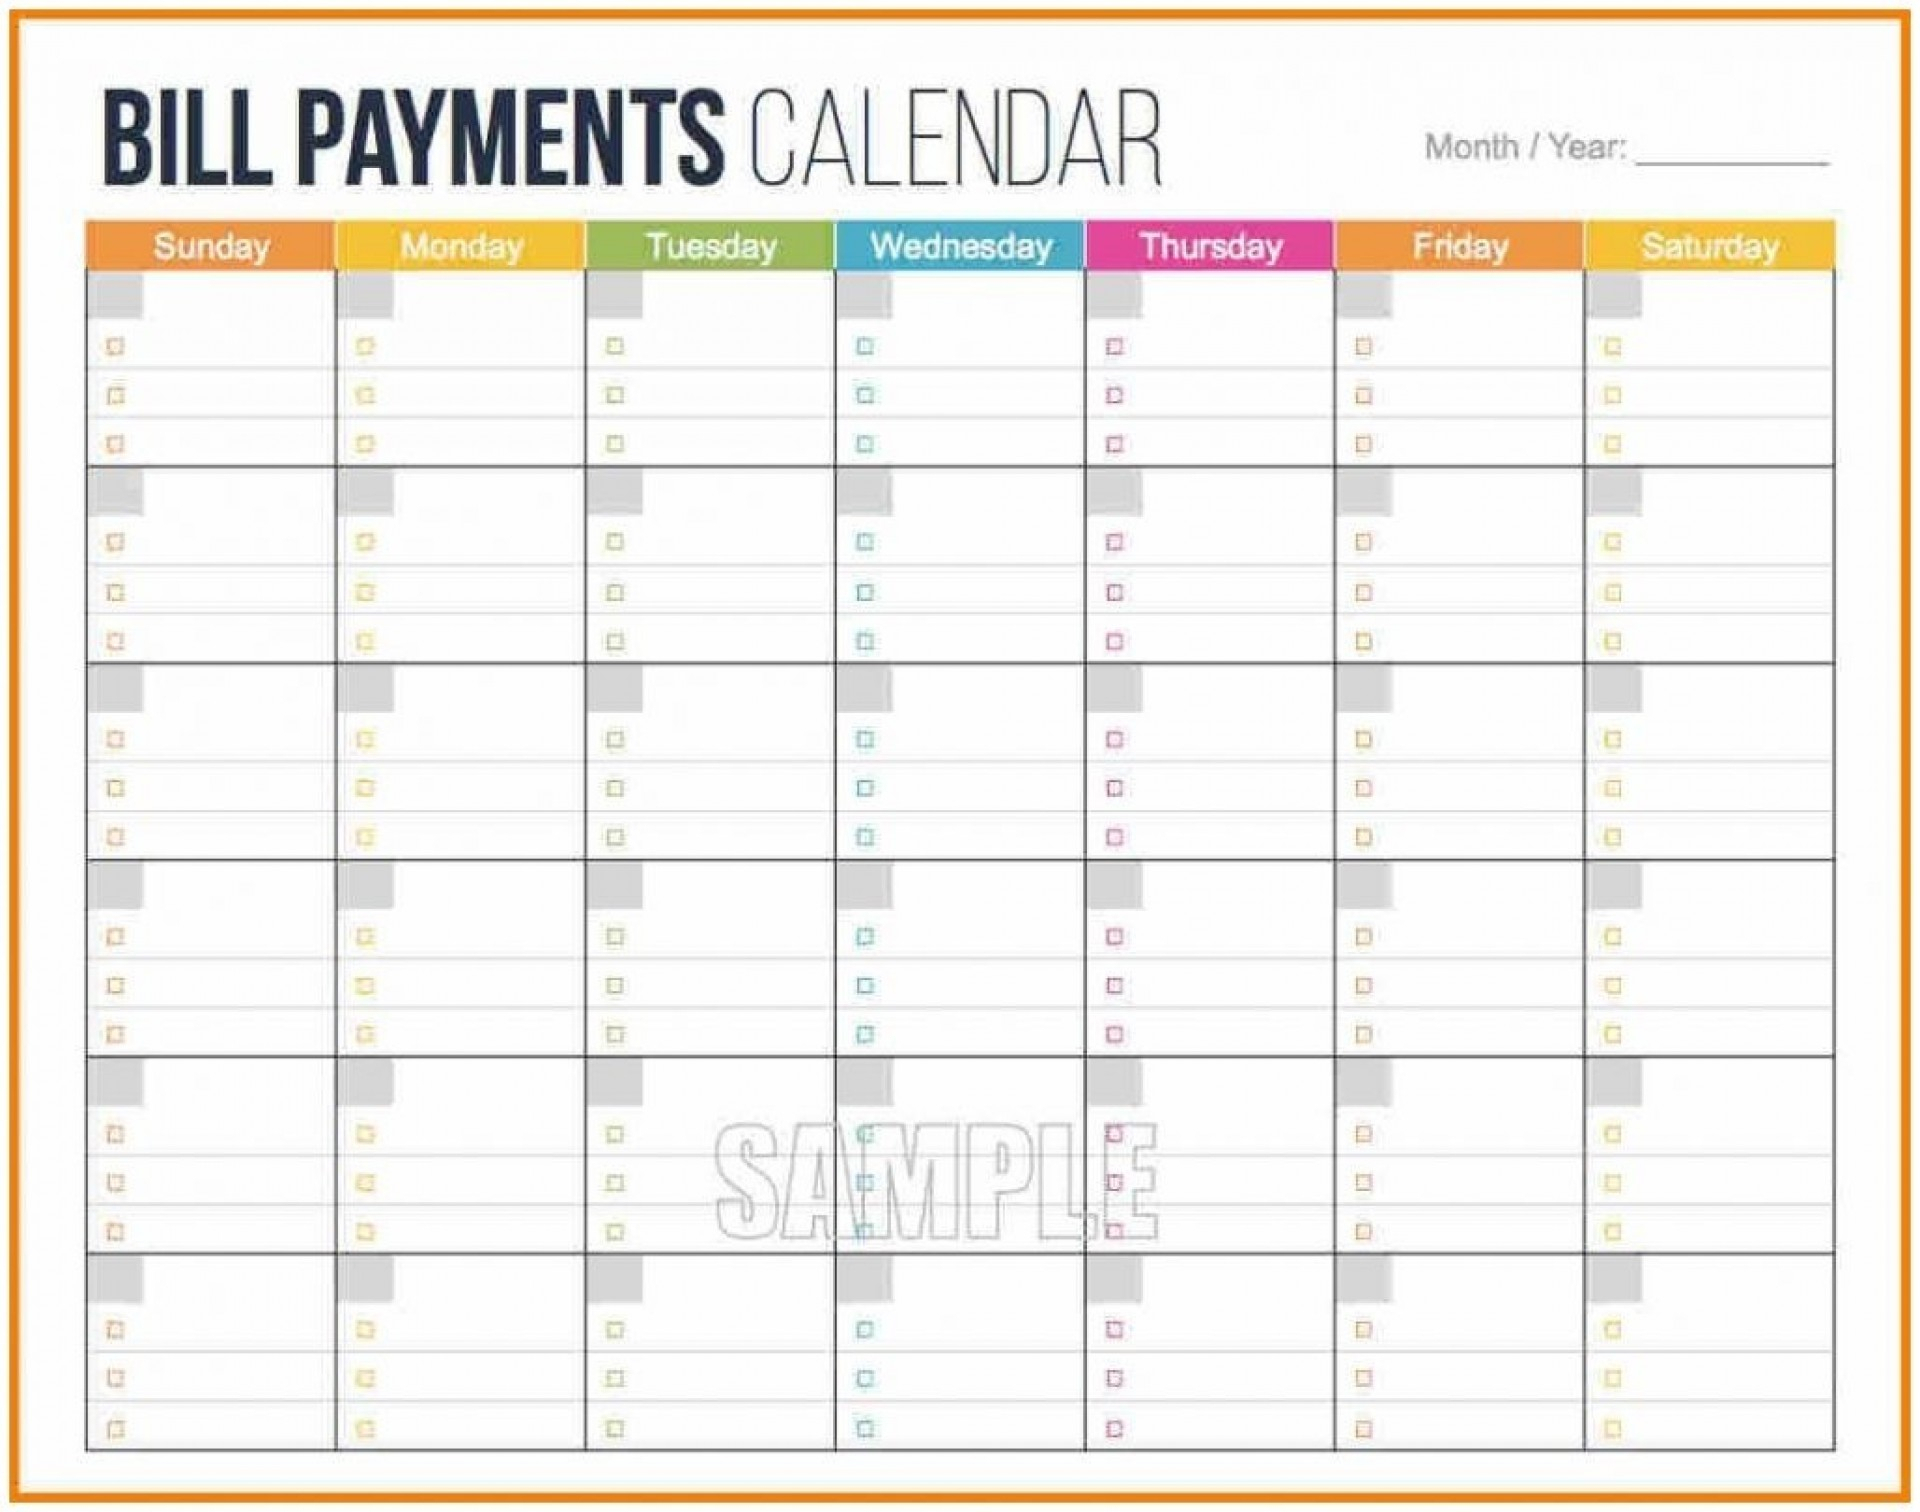 003 Bill Pay Calendar Template Ideas Paying Free Printable in Bill Pay Calendar Organizer